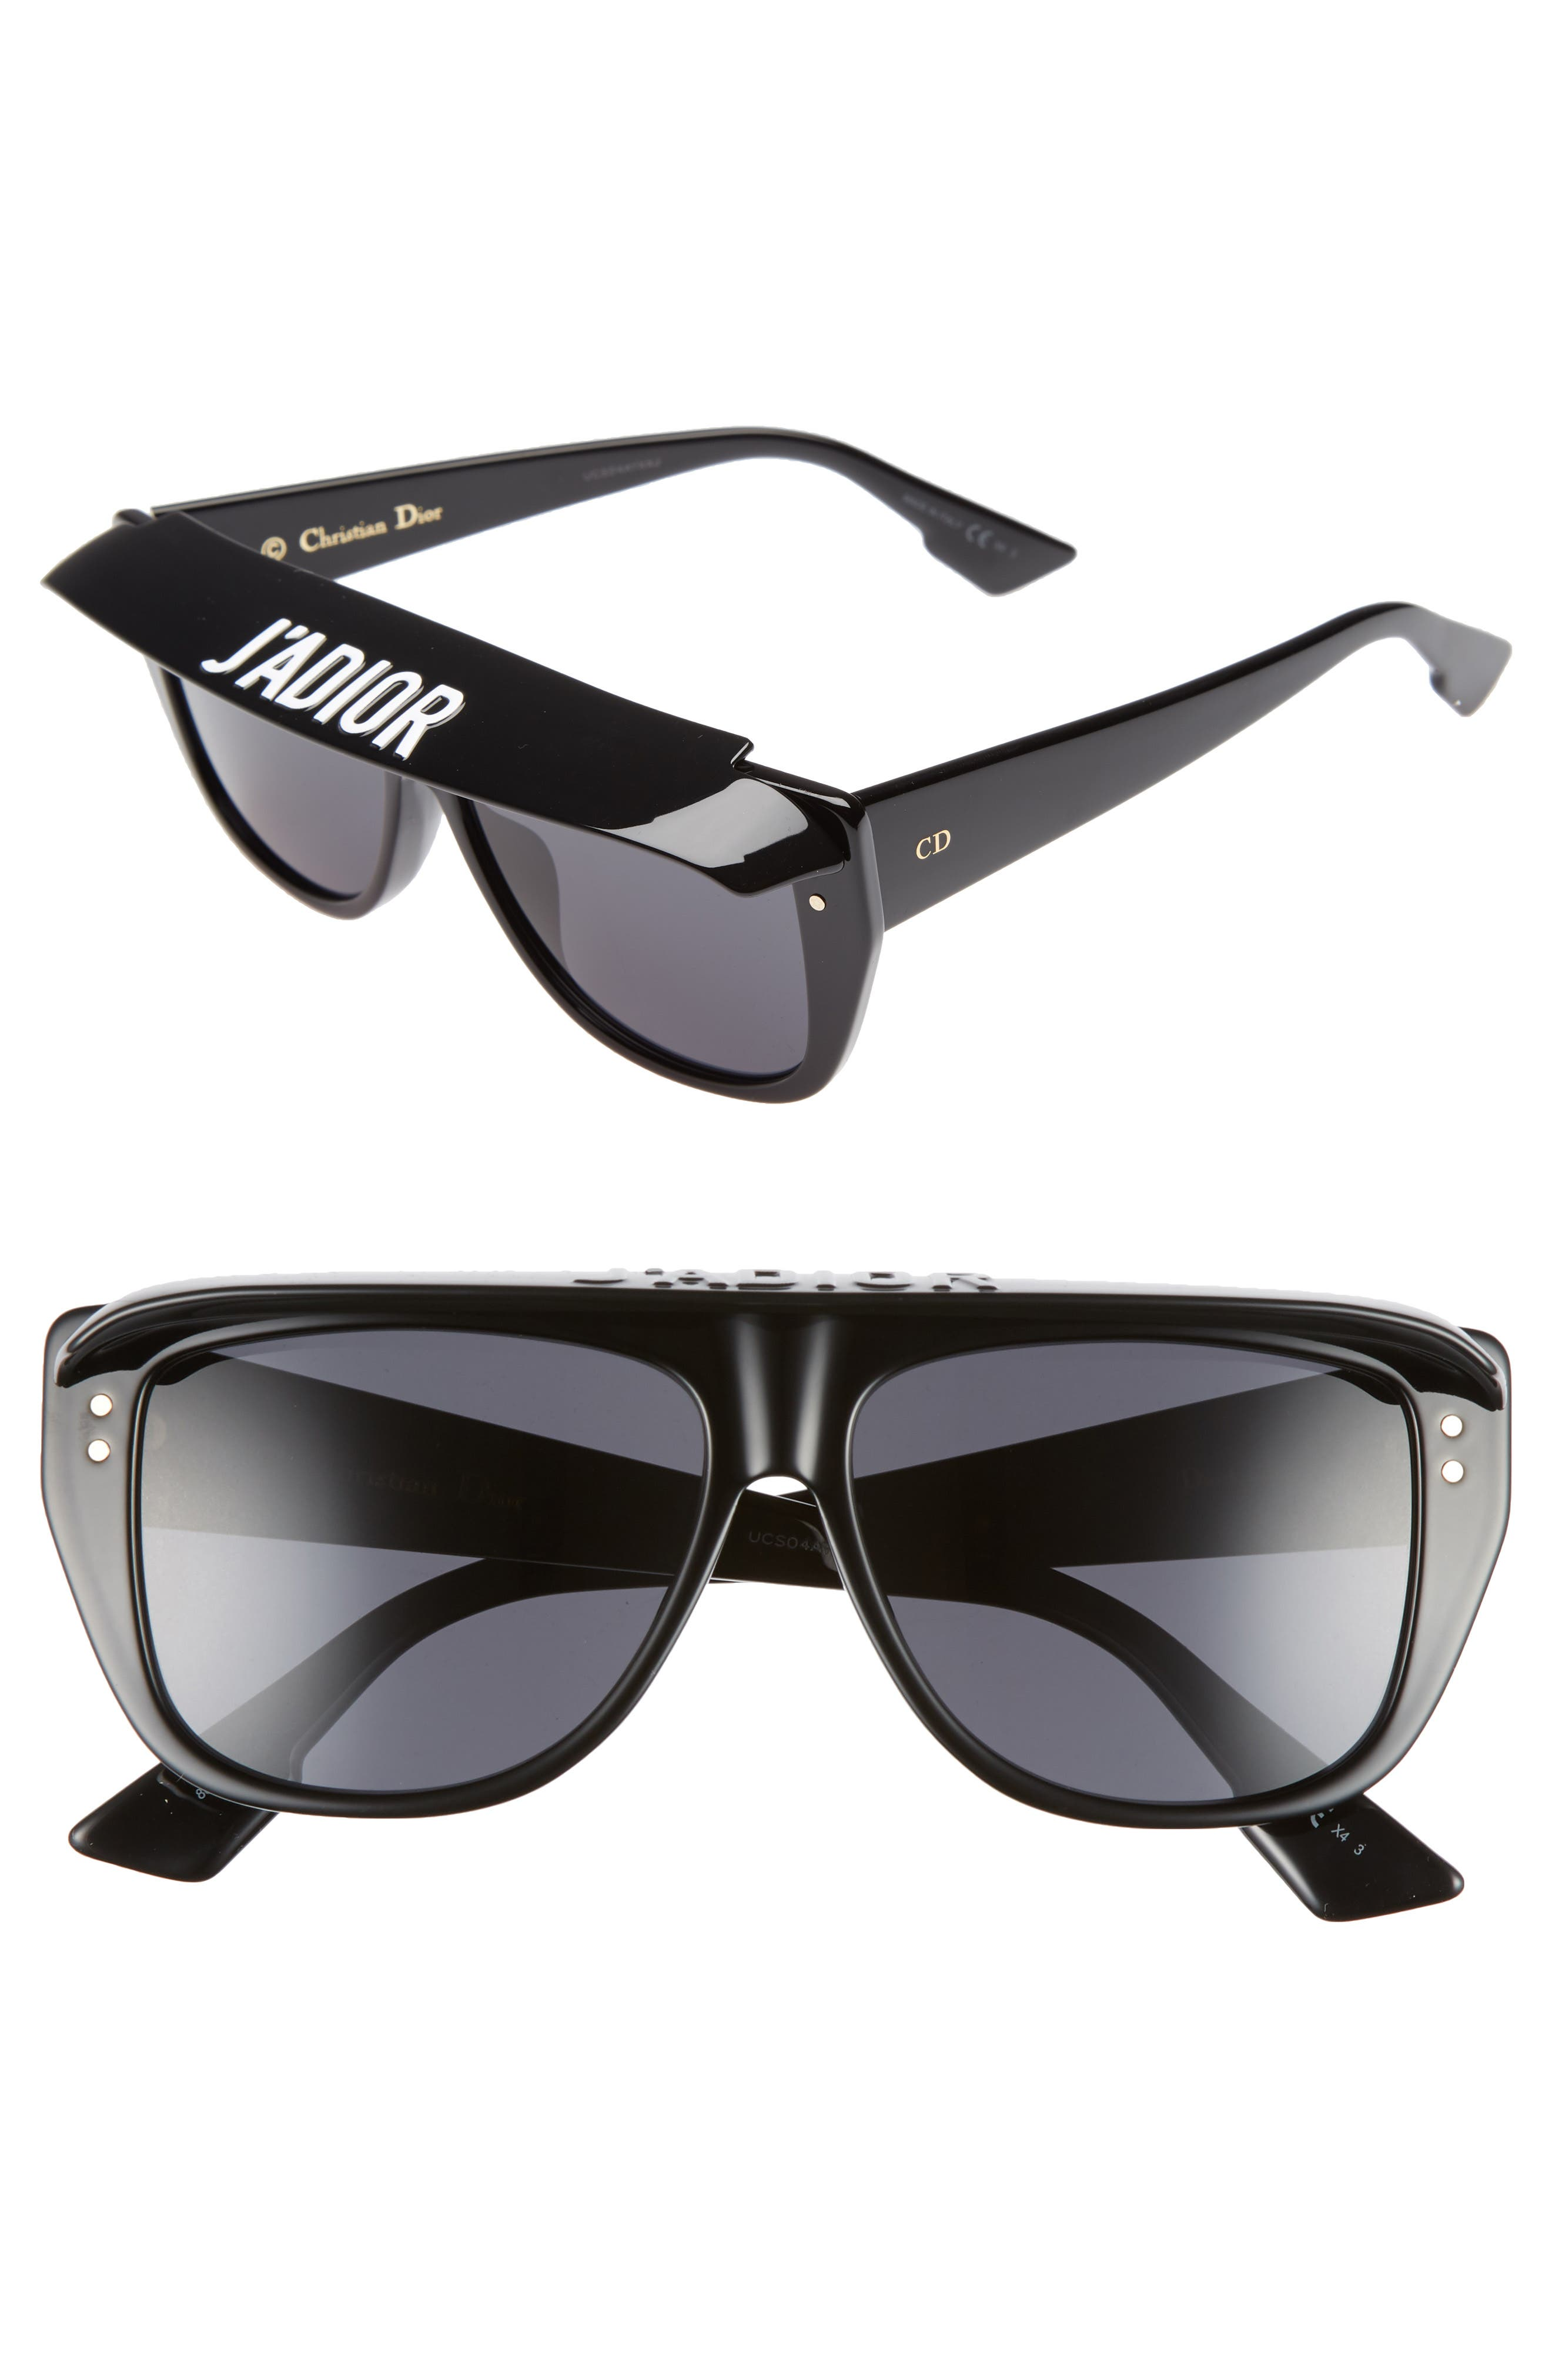 DiorClub2S 56mm Square Sunglasses with Removable Visor,                         Main,                         color, BLACK